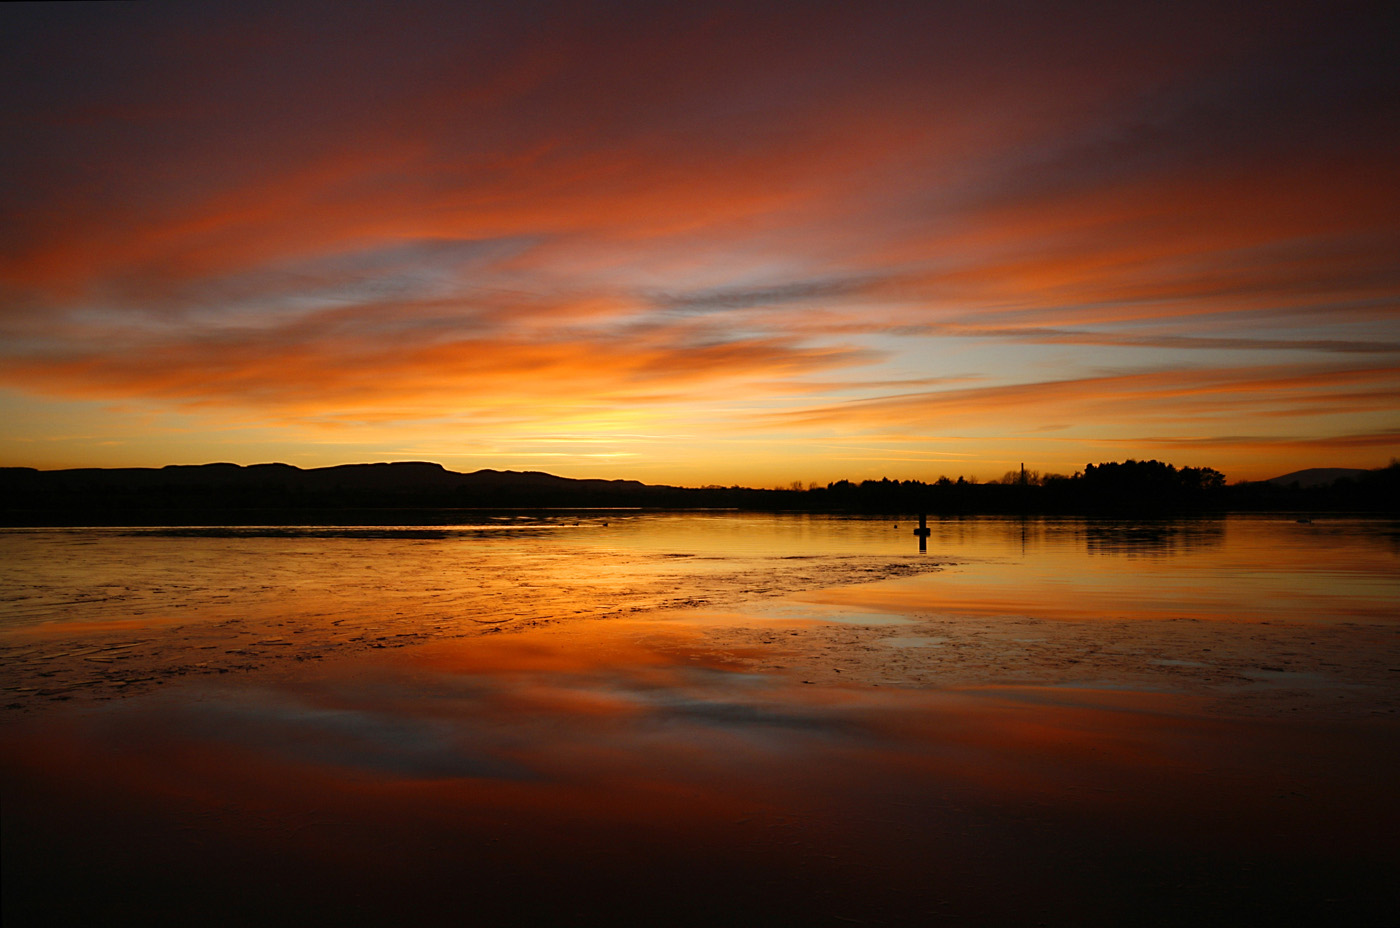 Projected Image - 2nd Place: Loch Leven at Sunset by Liz Kay